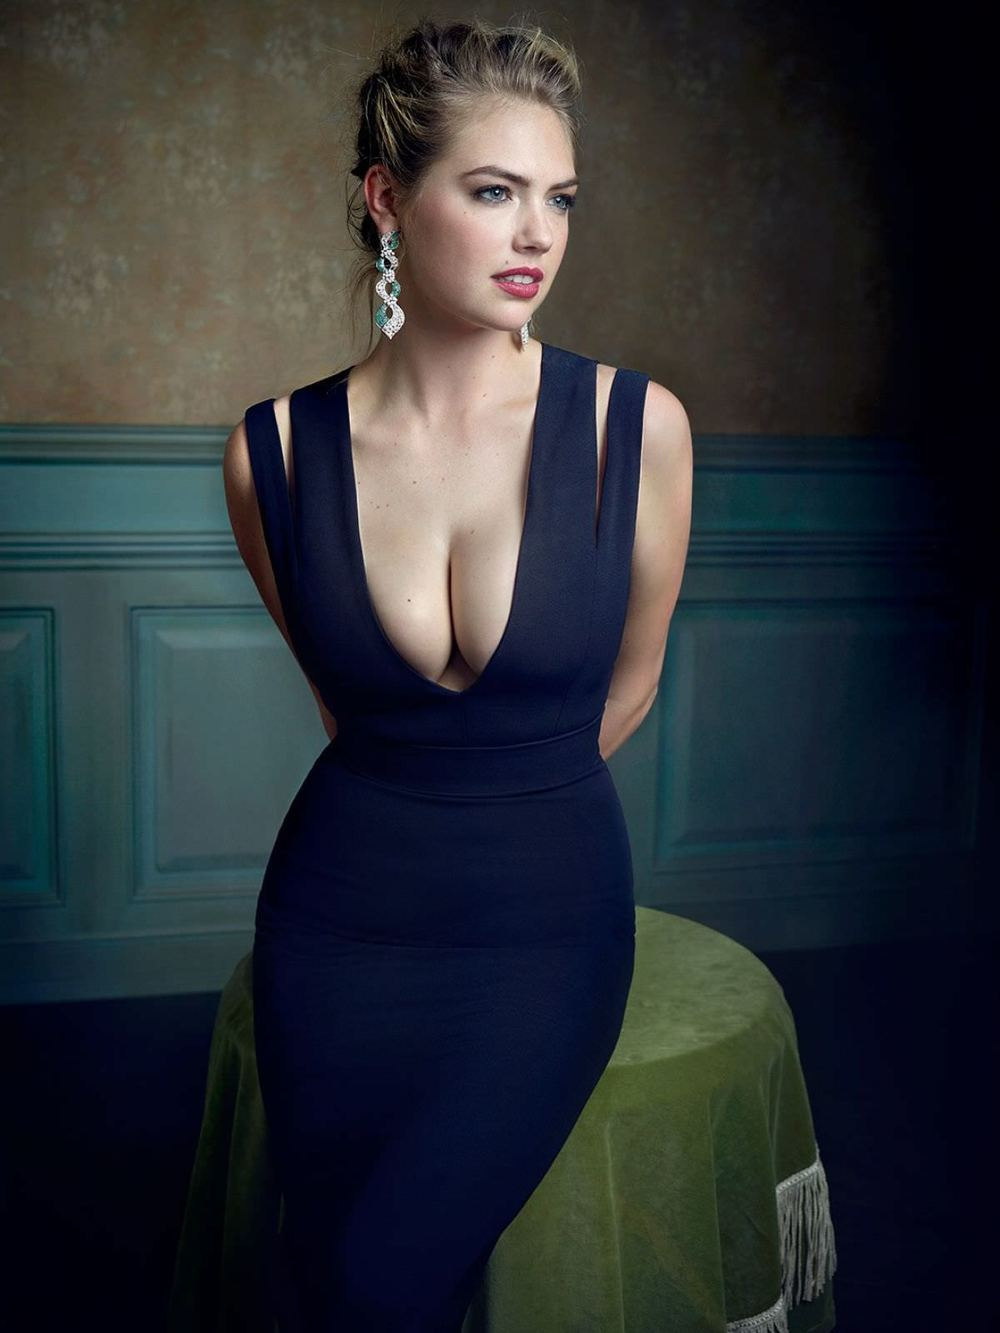 kate-upton-by-mark-seliger-for-vanity-fair-oscar-party_1.jpg